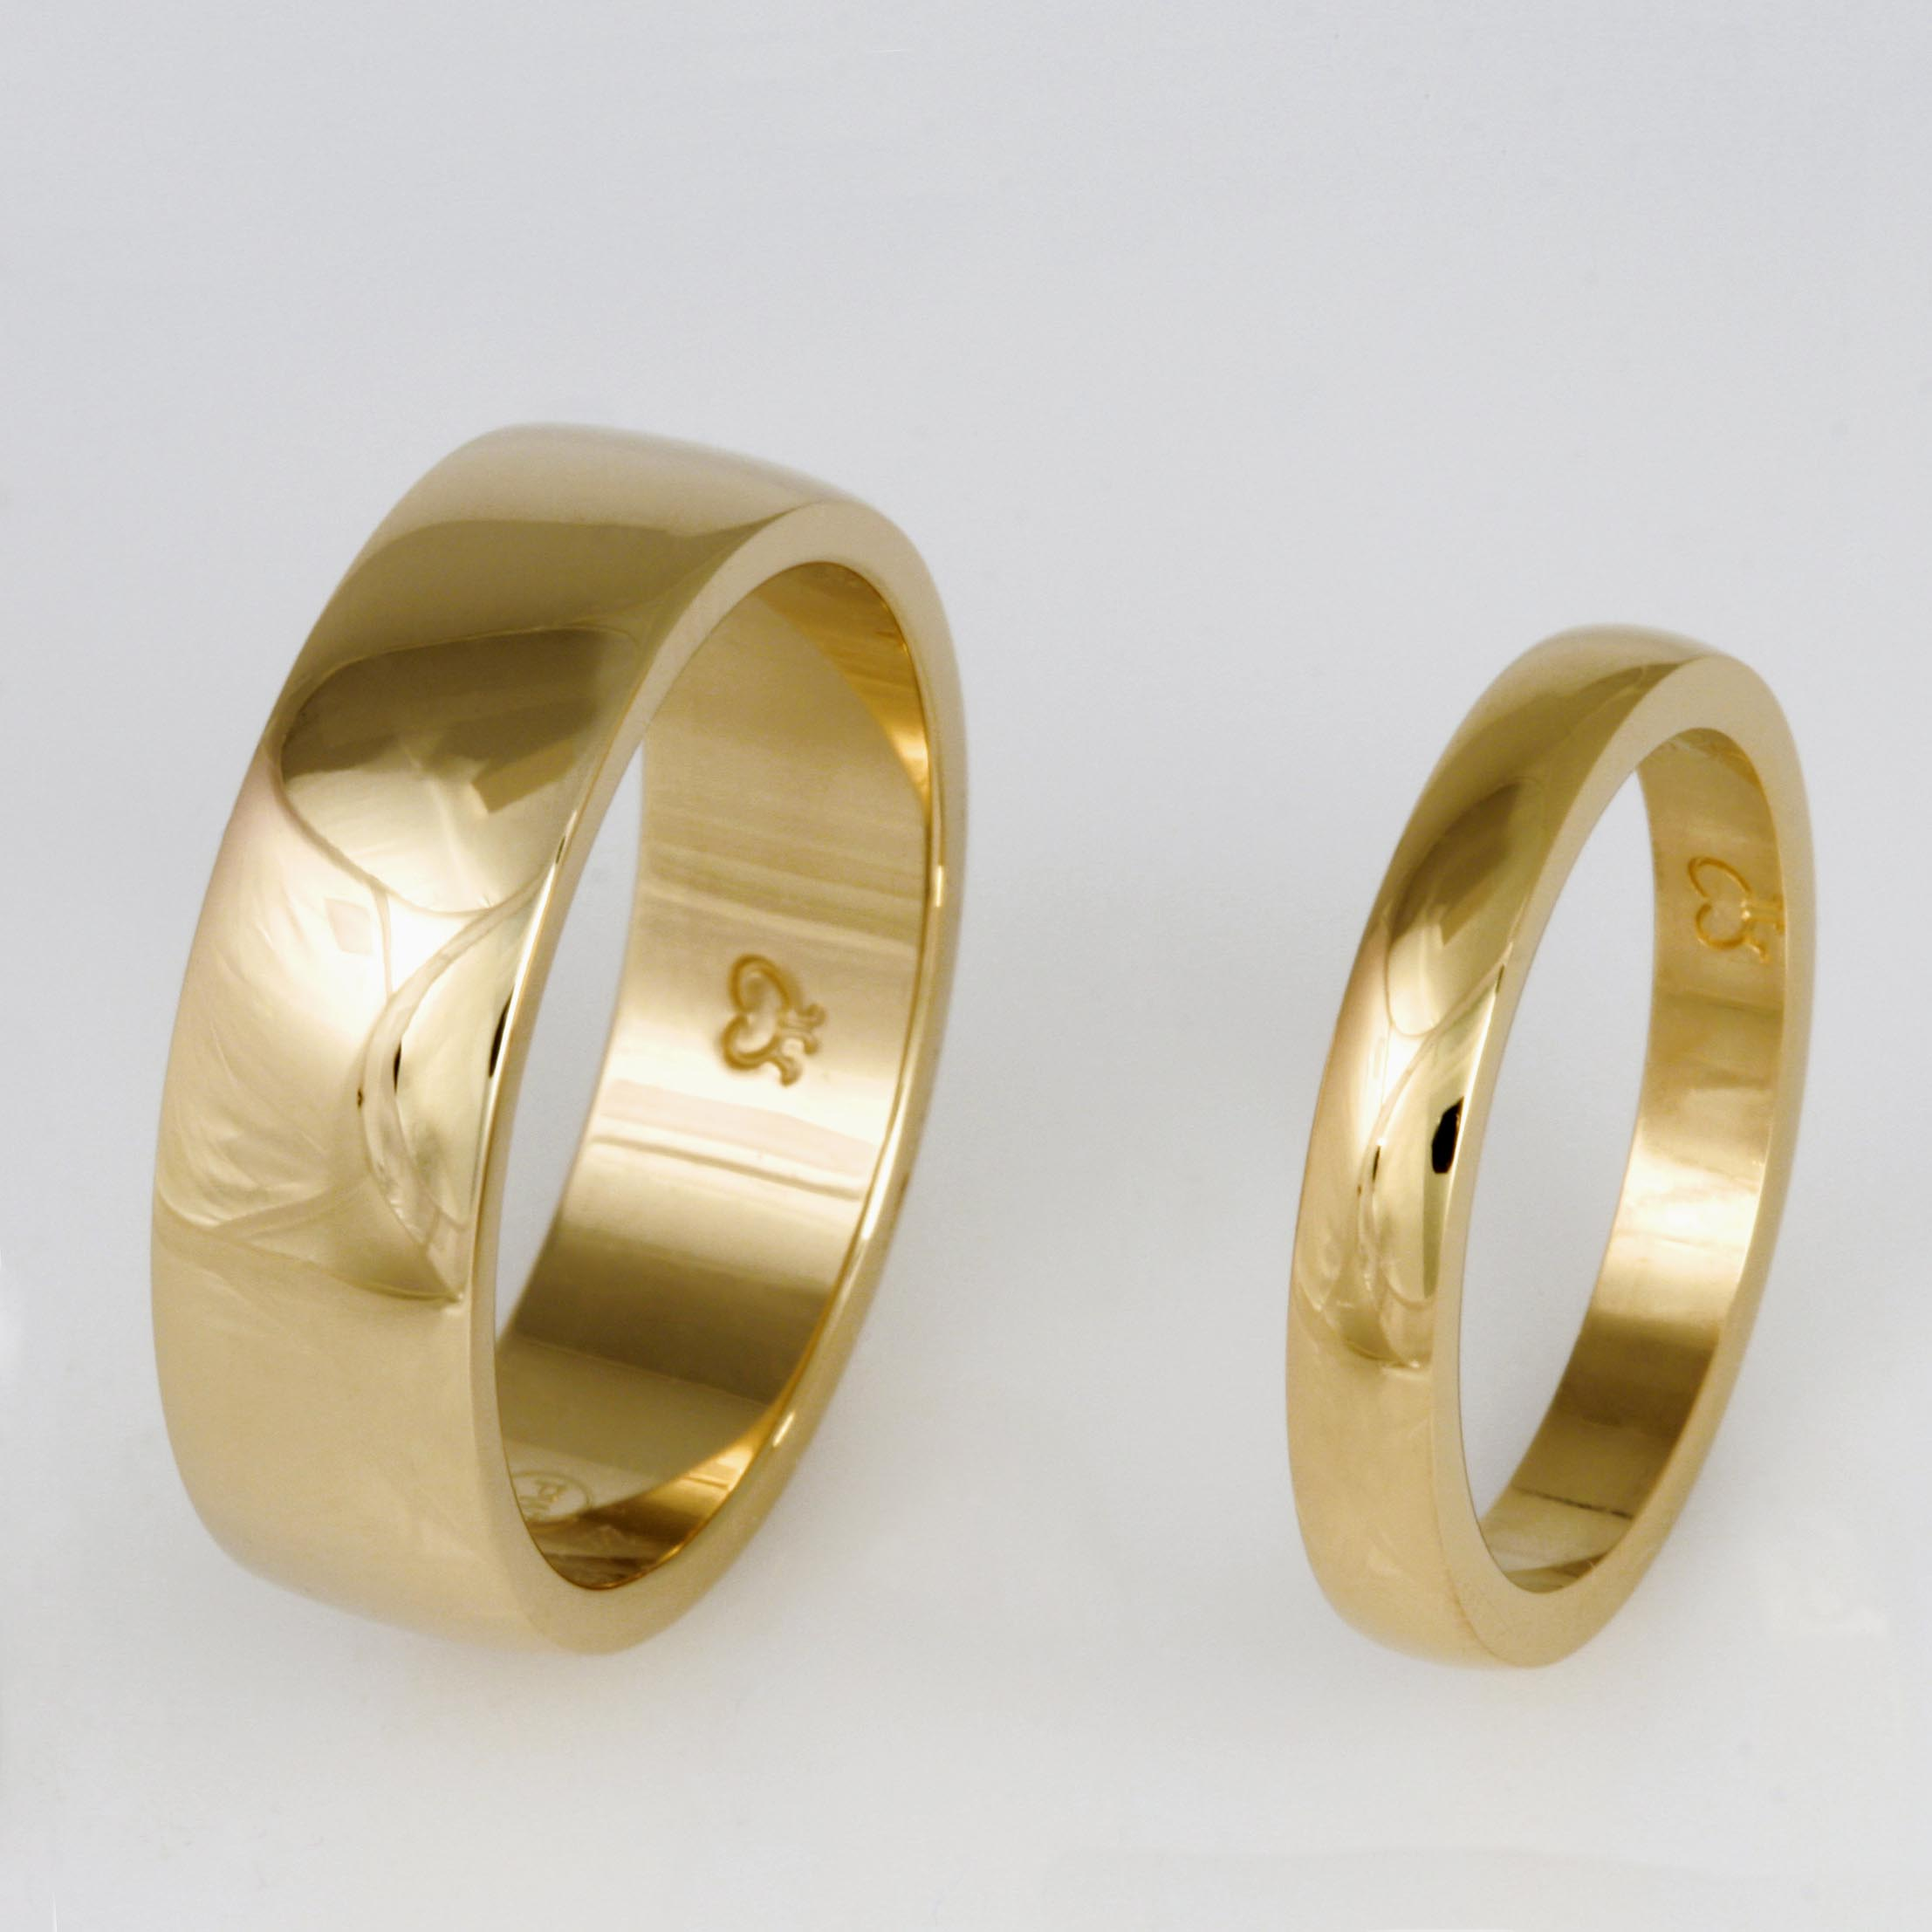 Handmade ladies 18ct yellow gold and gents 14ct yellow gold wedding rings